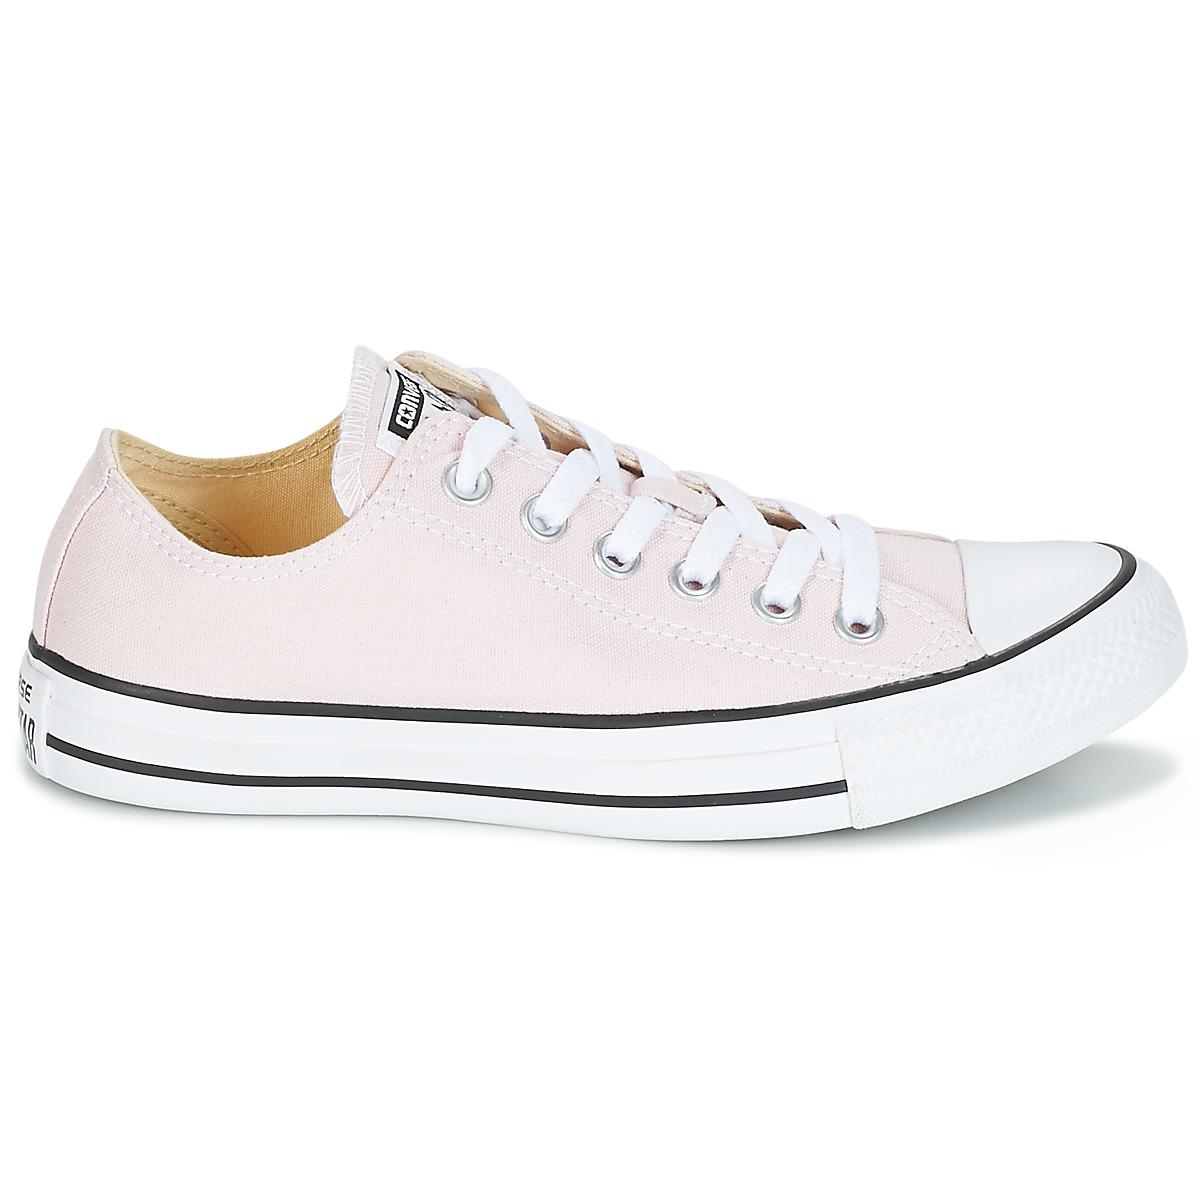 ce7d0c32970ffc Converse - Pink Chuck Taylor All Star Ox Seasonal Colors Shoes (trainers) -  Lyst. View fullscreen